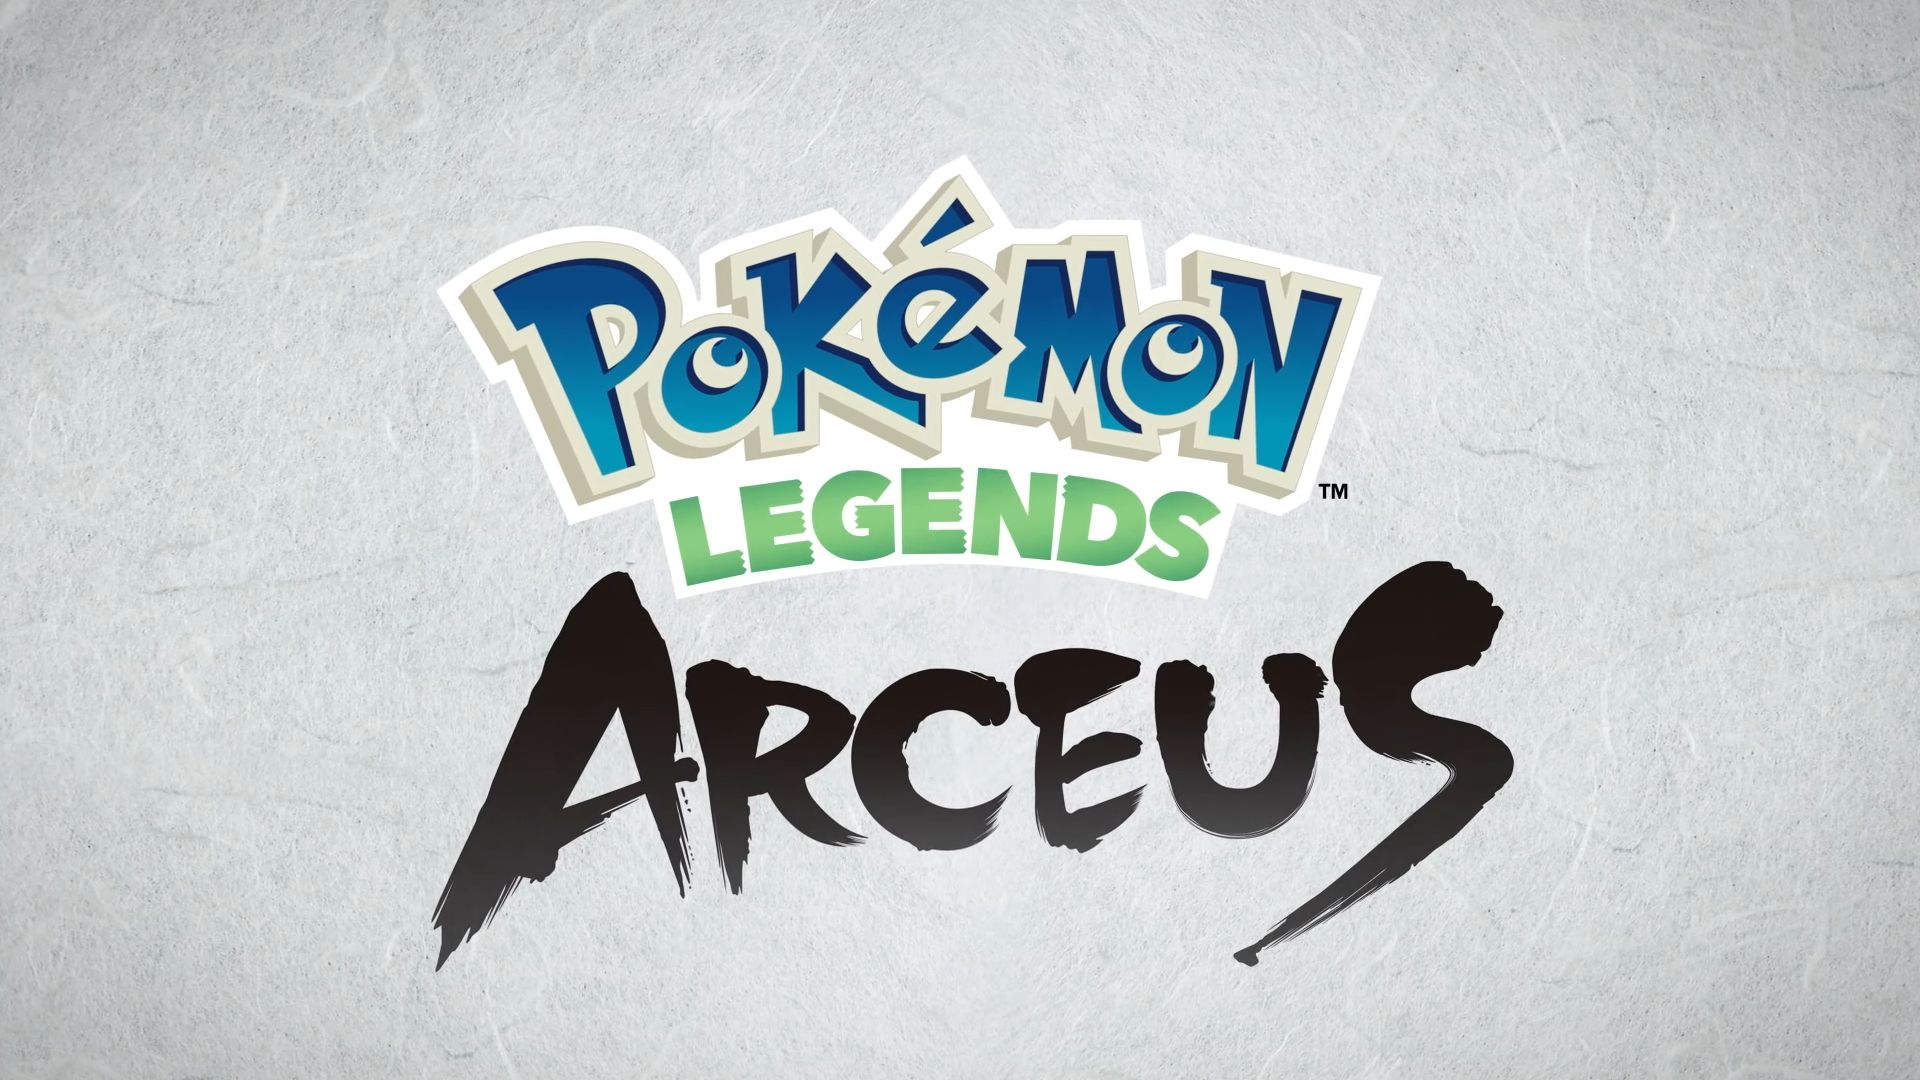 Annunciato Pokémon Legends: Arceus, il primo open world nella storia del franchise